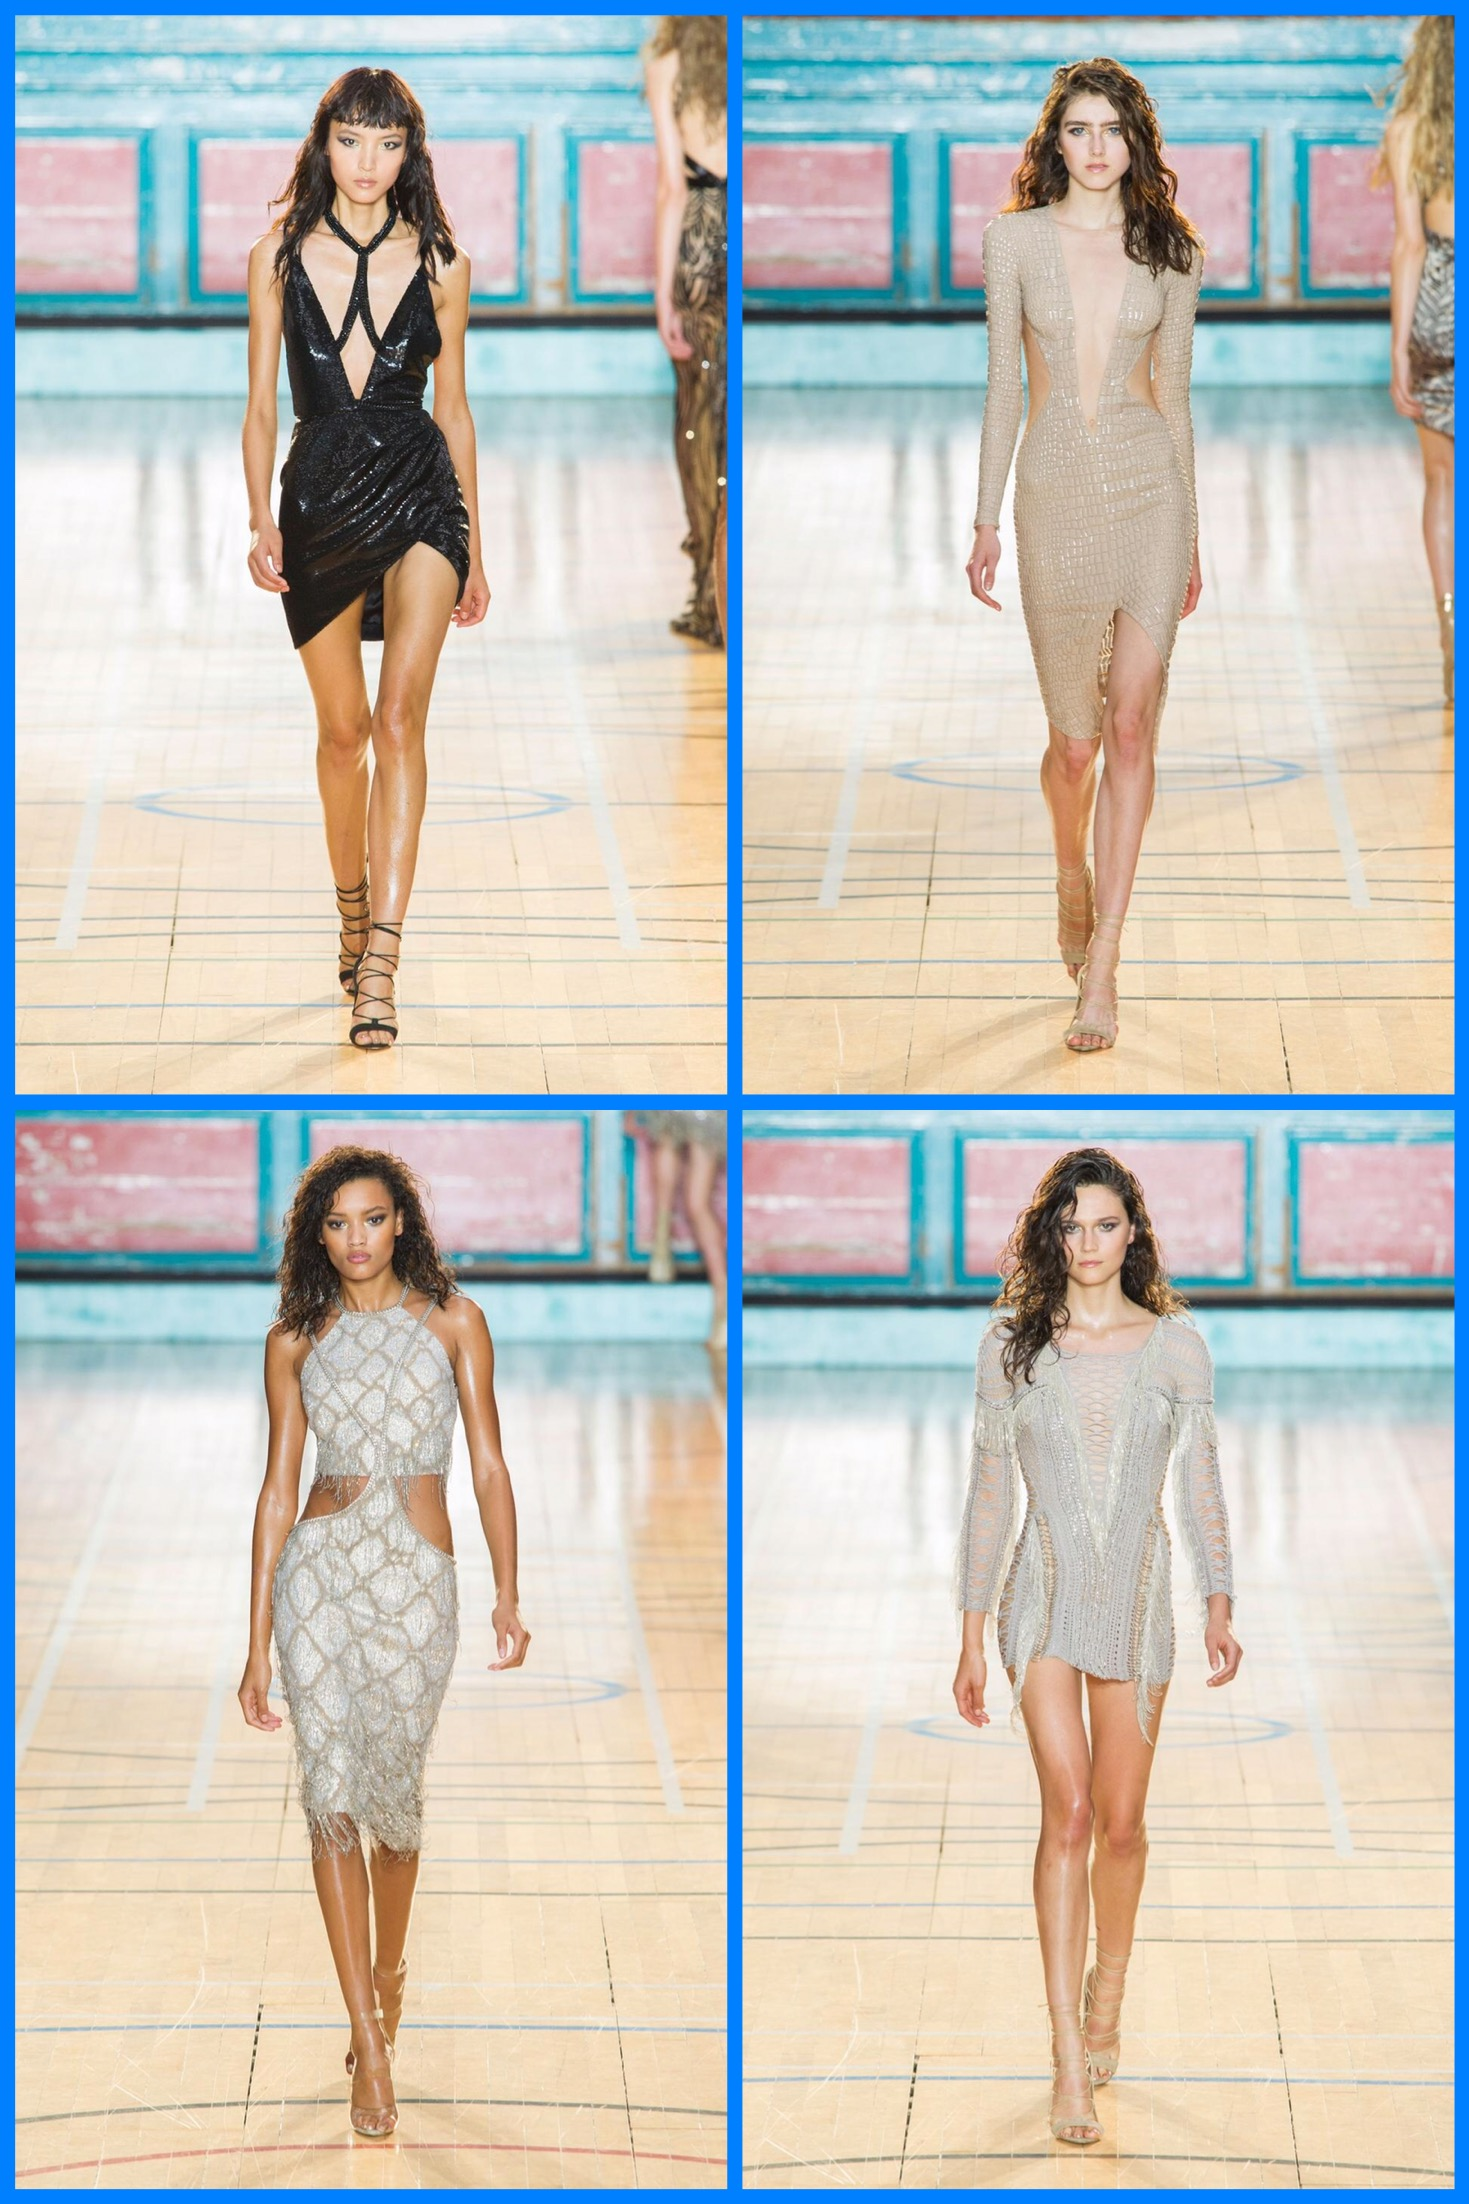 london-fashion-week-pret-a-porter-spring-summer-2017-style-julien-macdonald